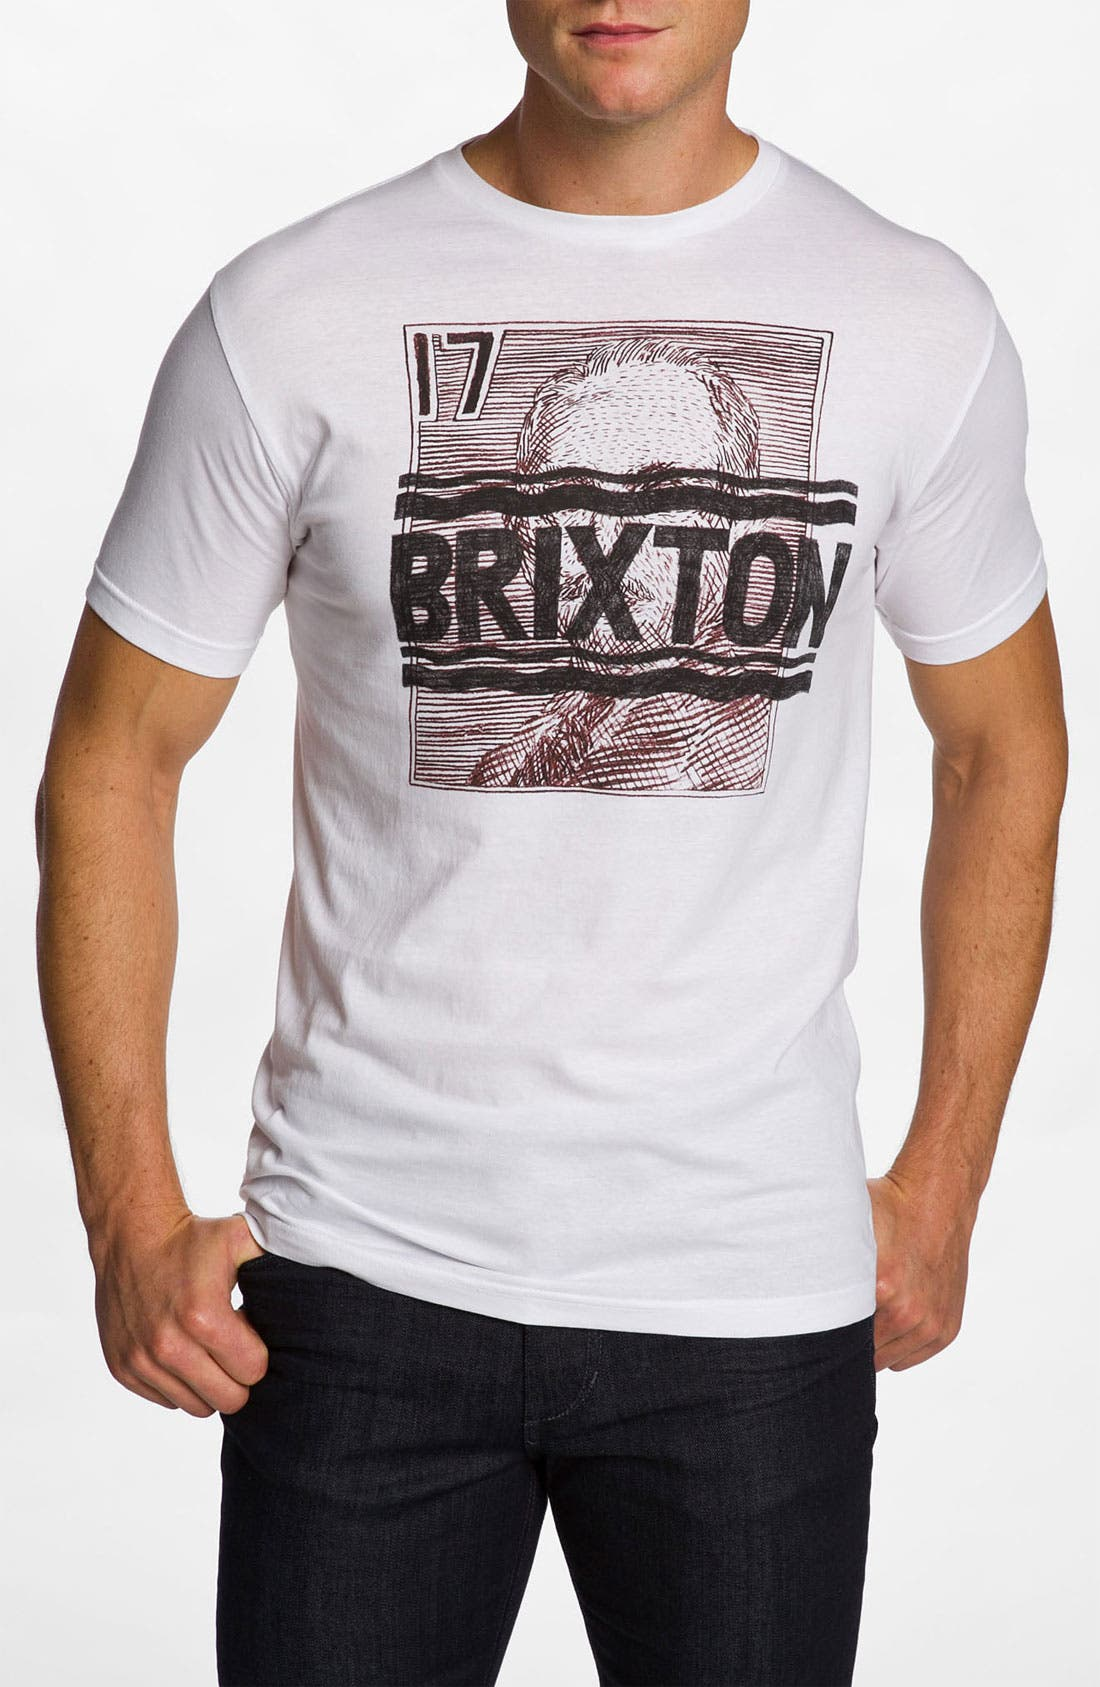 Main Image - Brixton 'Courier' Graphic T-Shirt